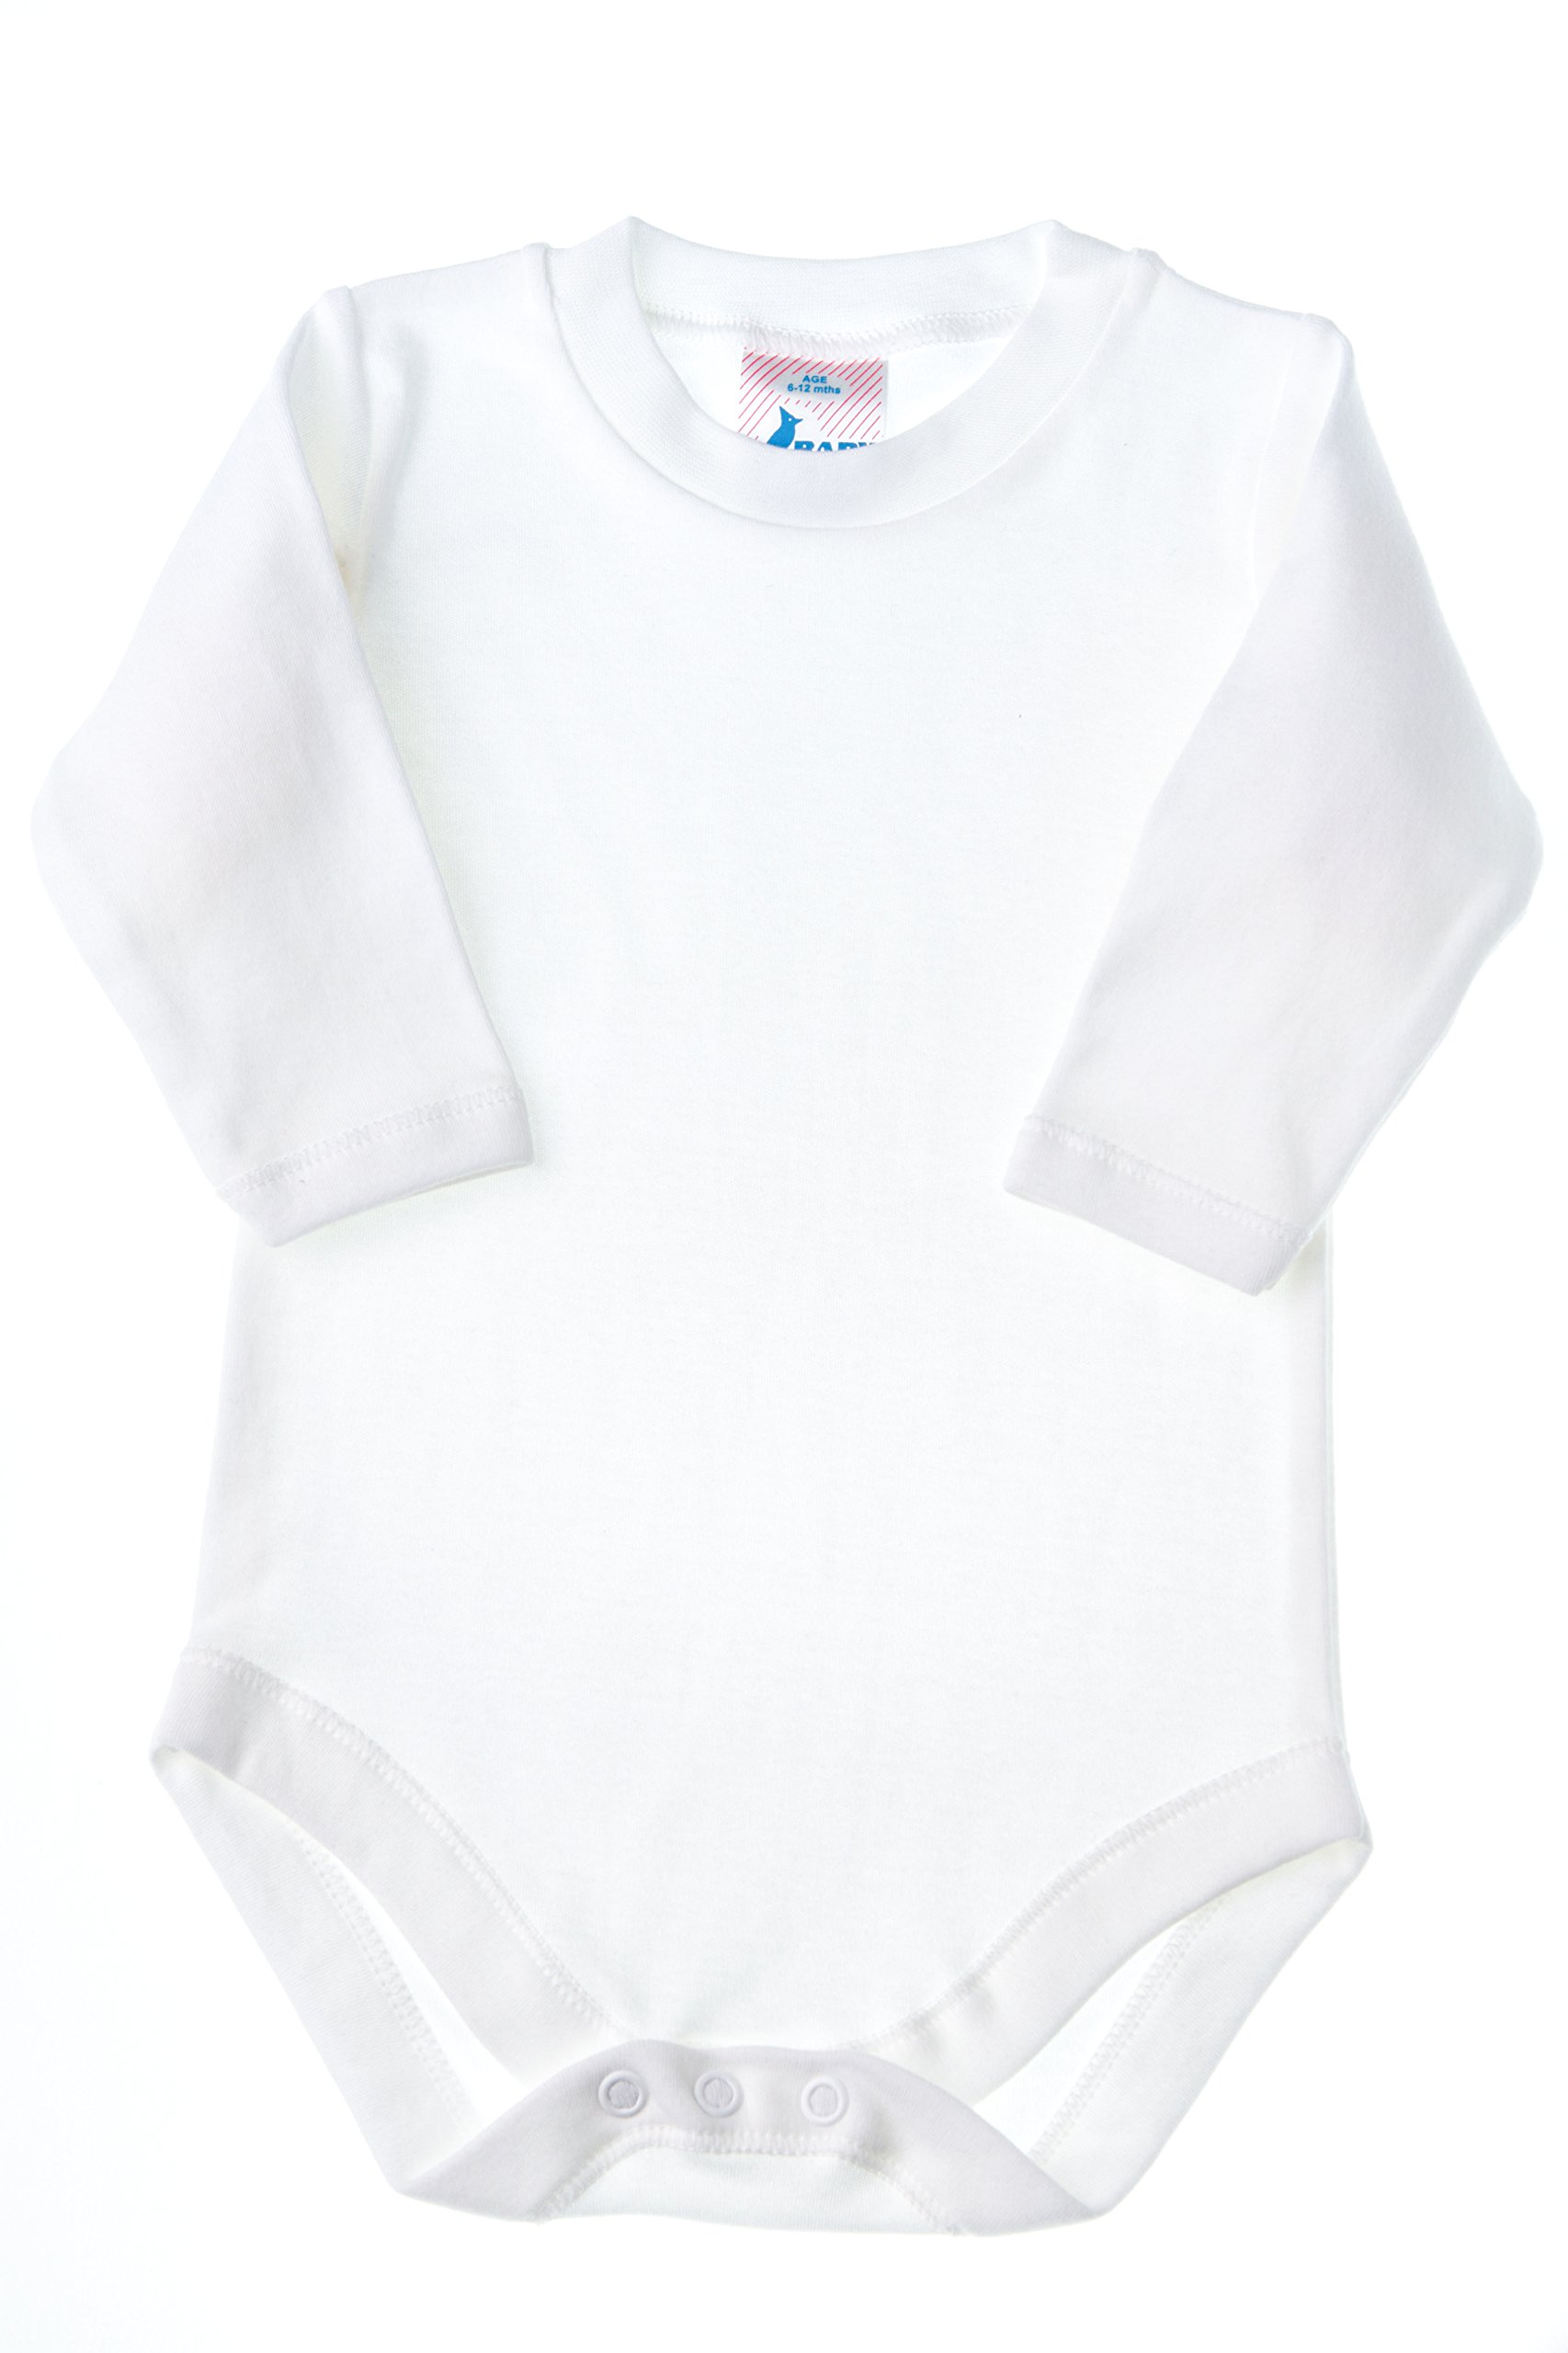 Baby Jay Soft Cotton Onesies, Long Sleeve Unisex Bodysuit, WSLR 18-24 2-Pack by Baby Jay (Image #2)